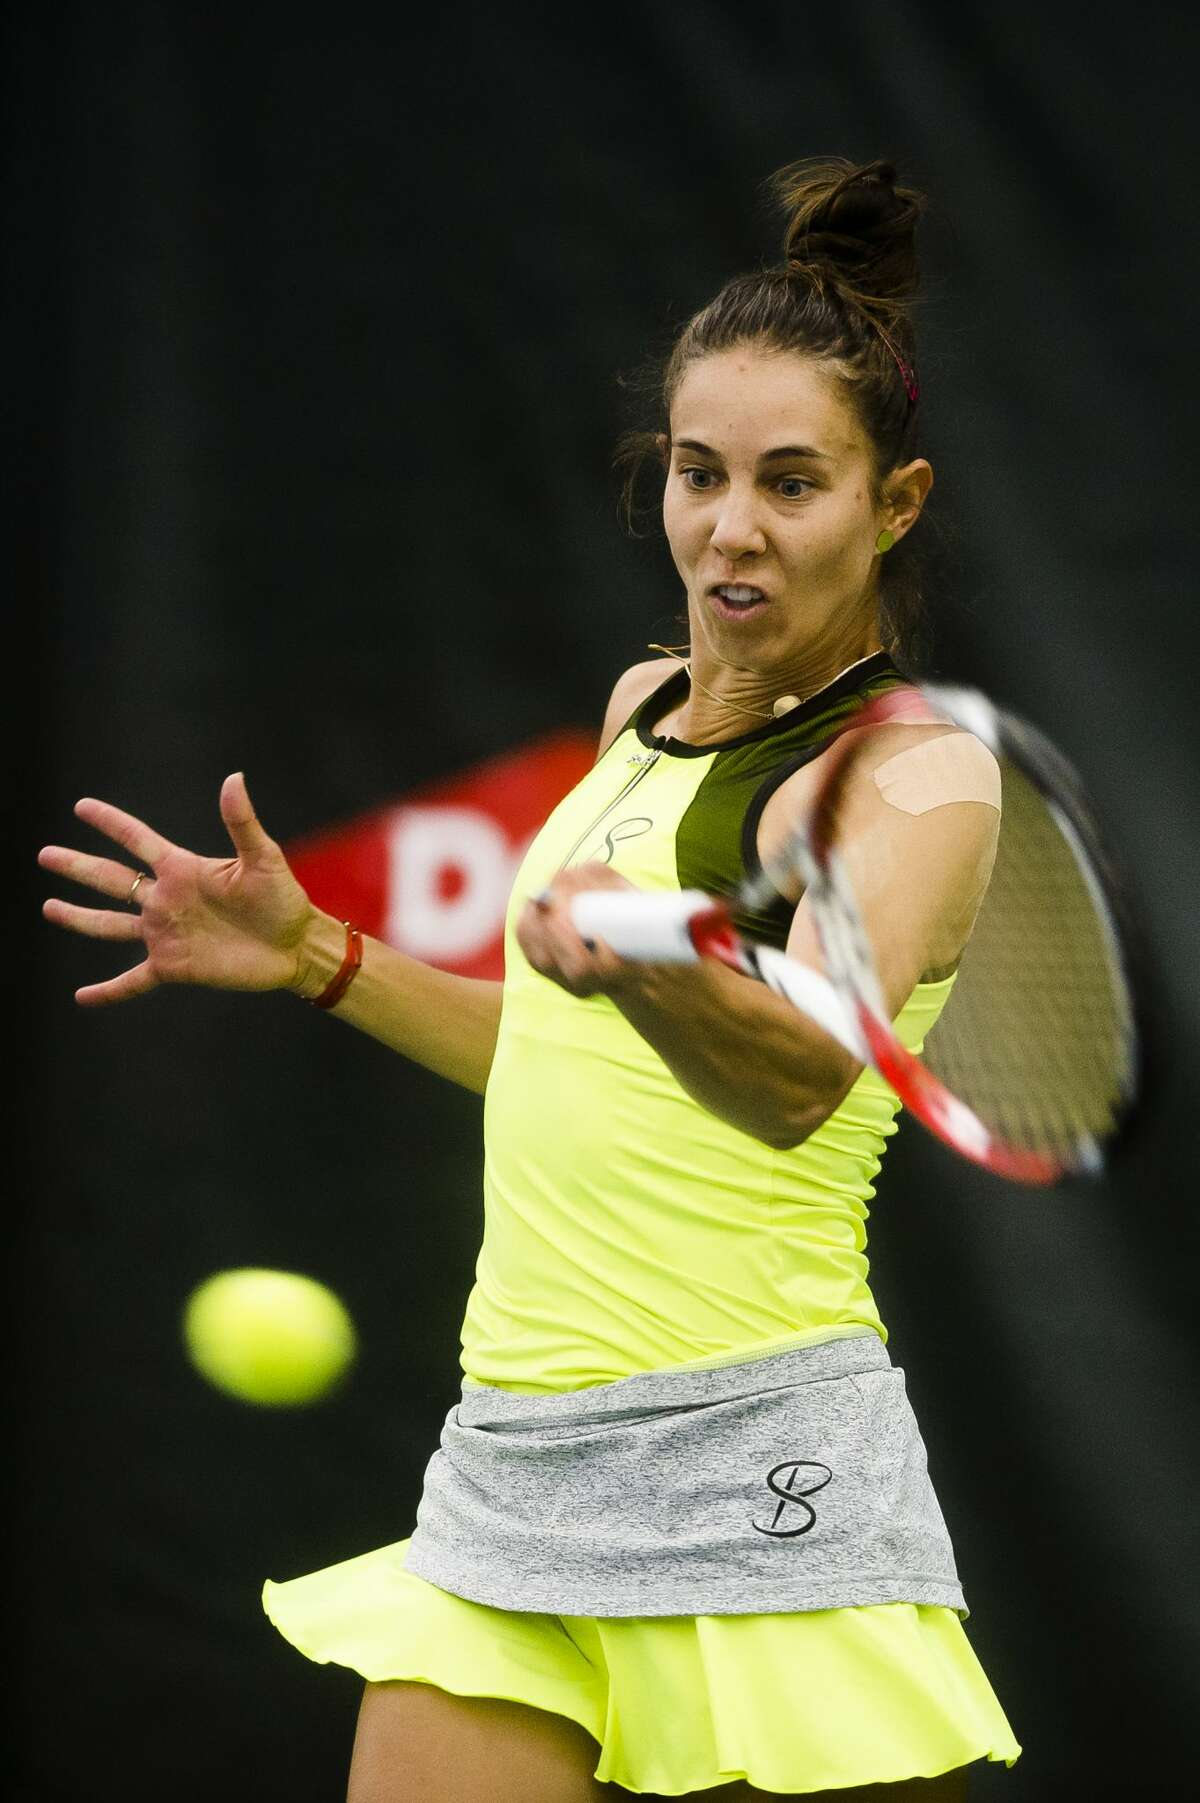 Mihaela Buzaƒrnescu of Romania returns the ball in a match against Naomi Broady of the United Kingdom during the Dow Tennis Classic on Tuesday, Jan. 30, 2018 at the Greater Midland Tennis Center.Buzarnescu won 7-5, 7-5 over Broady.(Katy Kildee/kkildee@mdn.net)